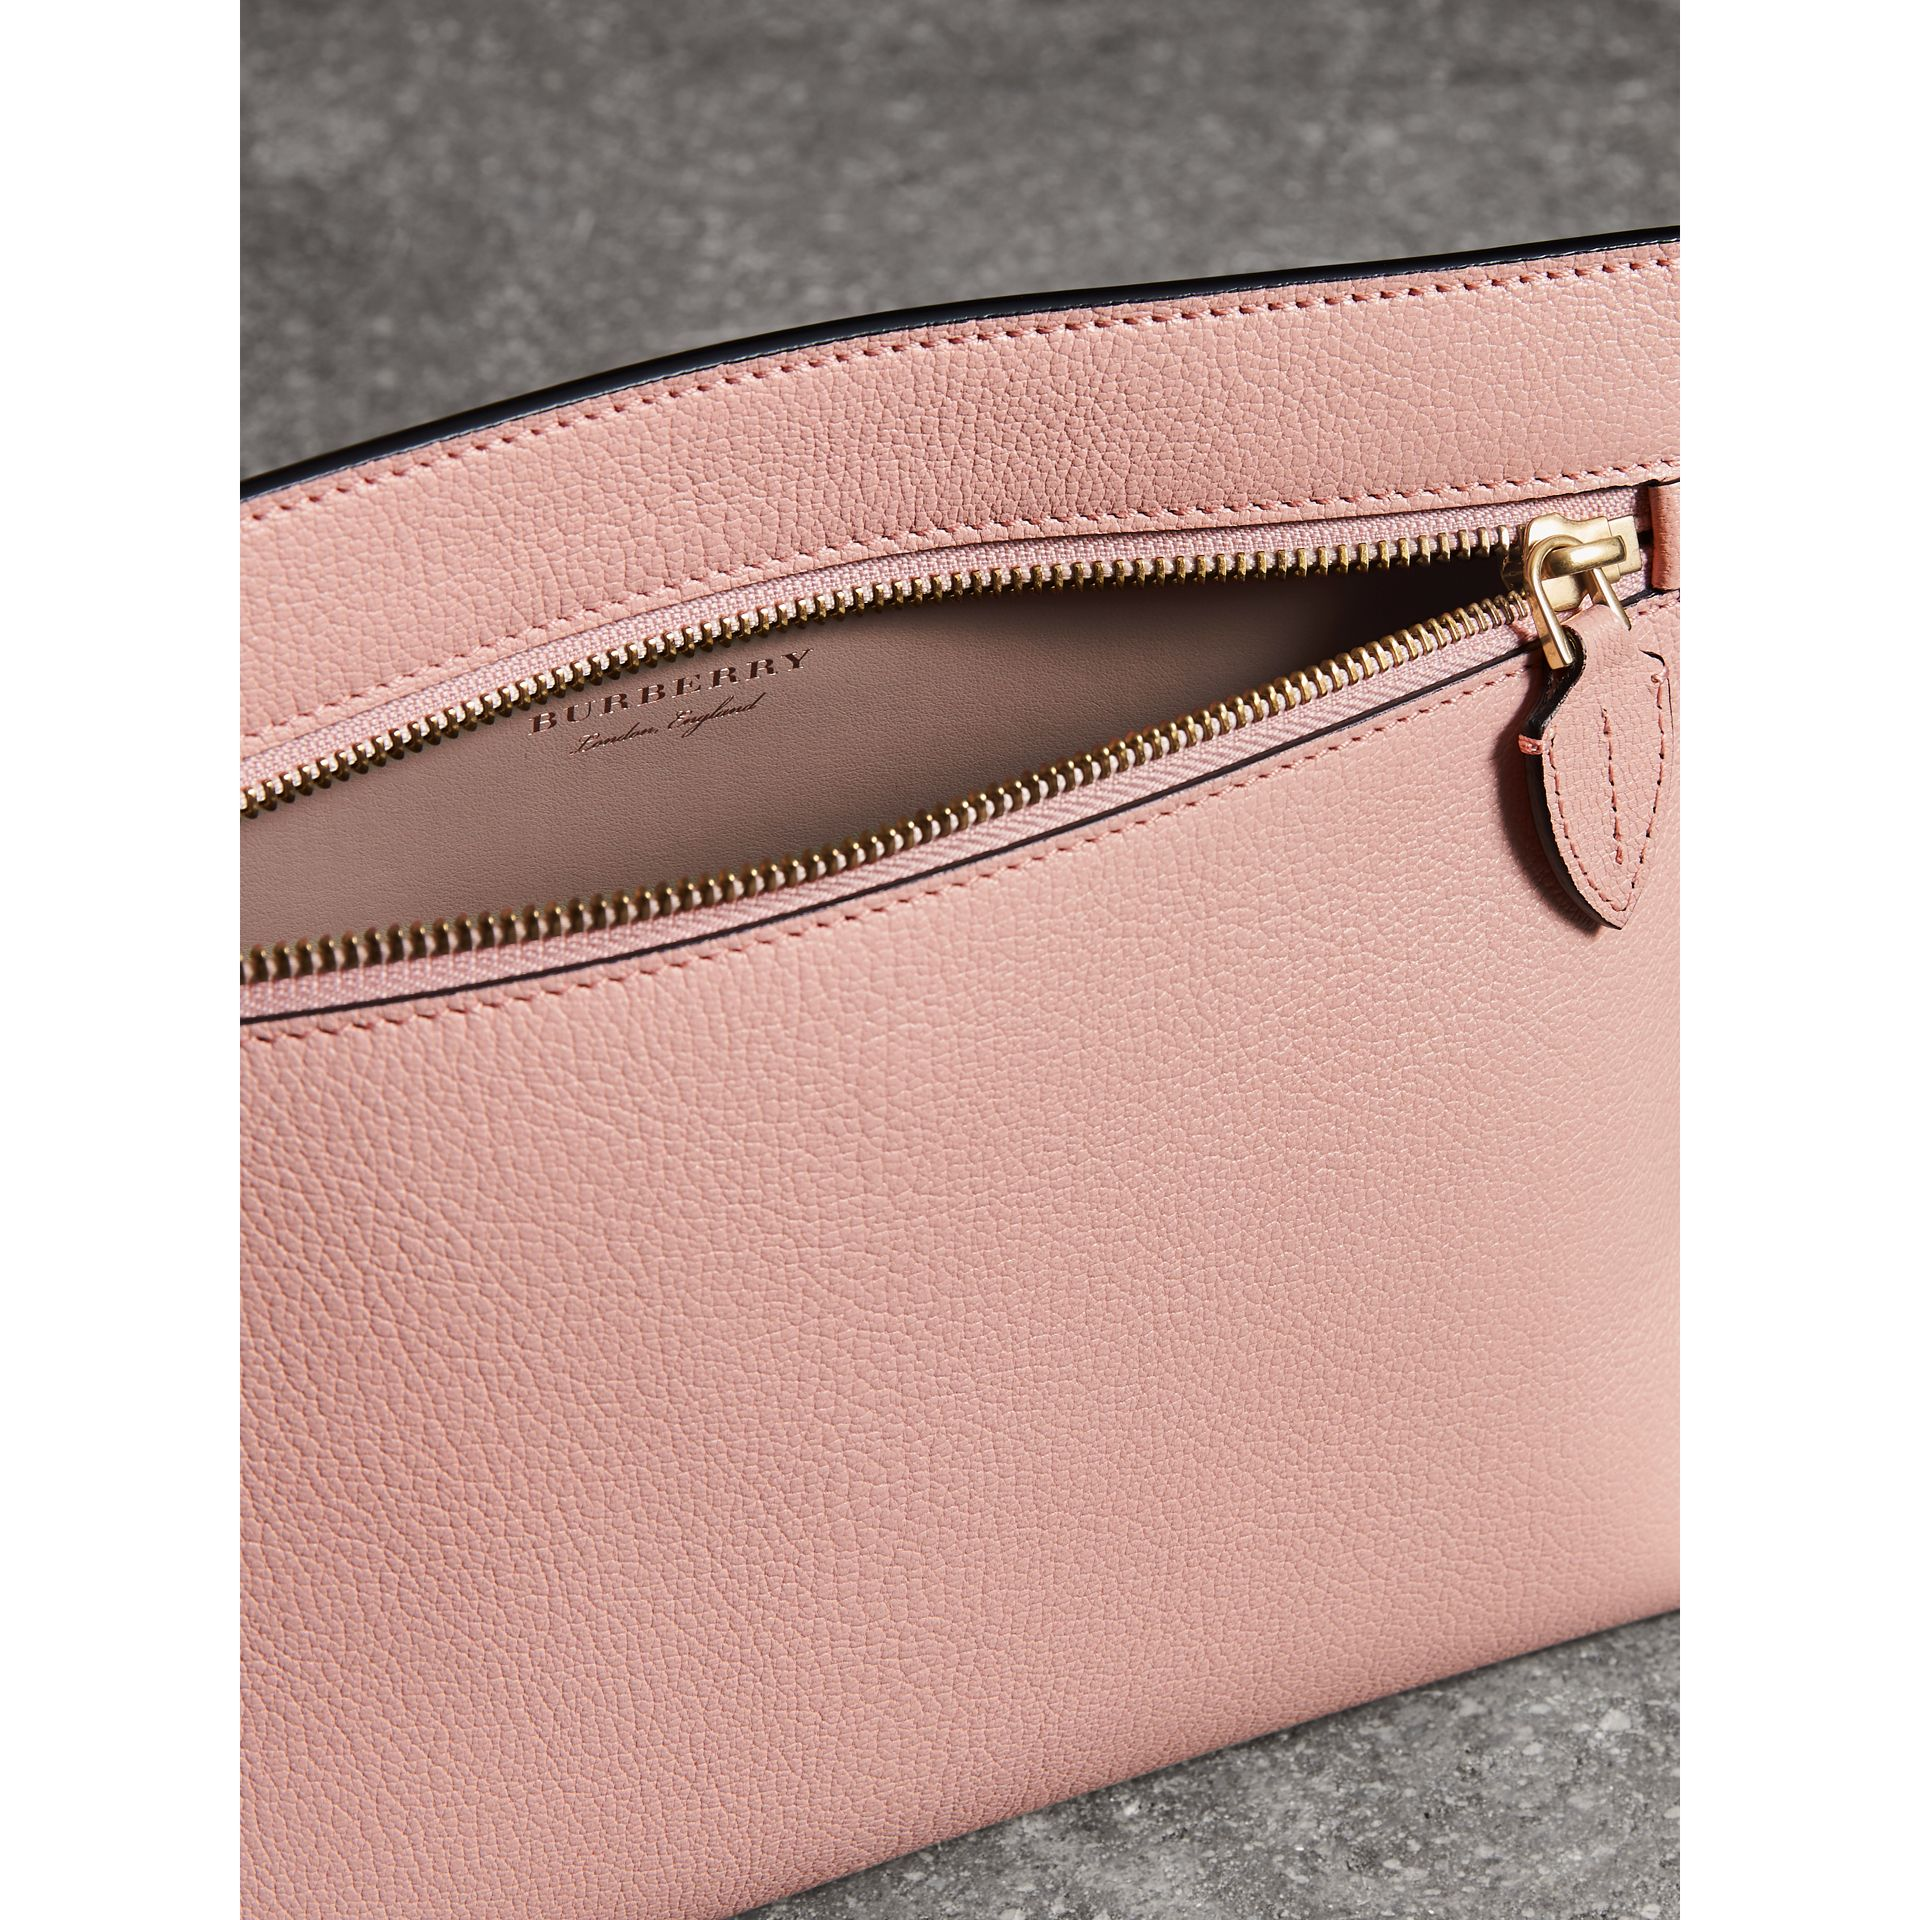 Grainy Leather Wristlet Clutch in Pale Ash Rose - Women | Burberry United Kingdom - gallery image 5